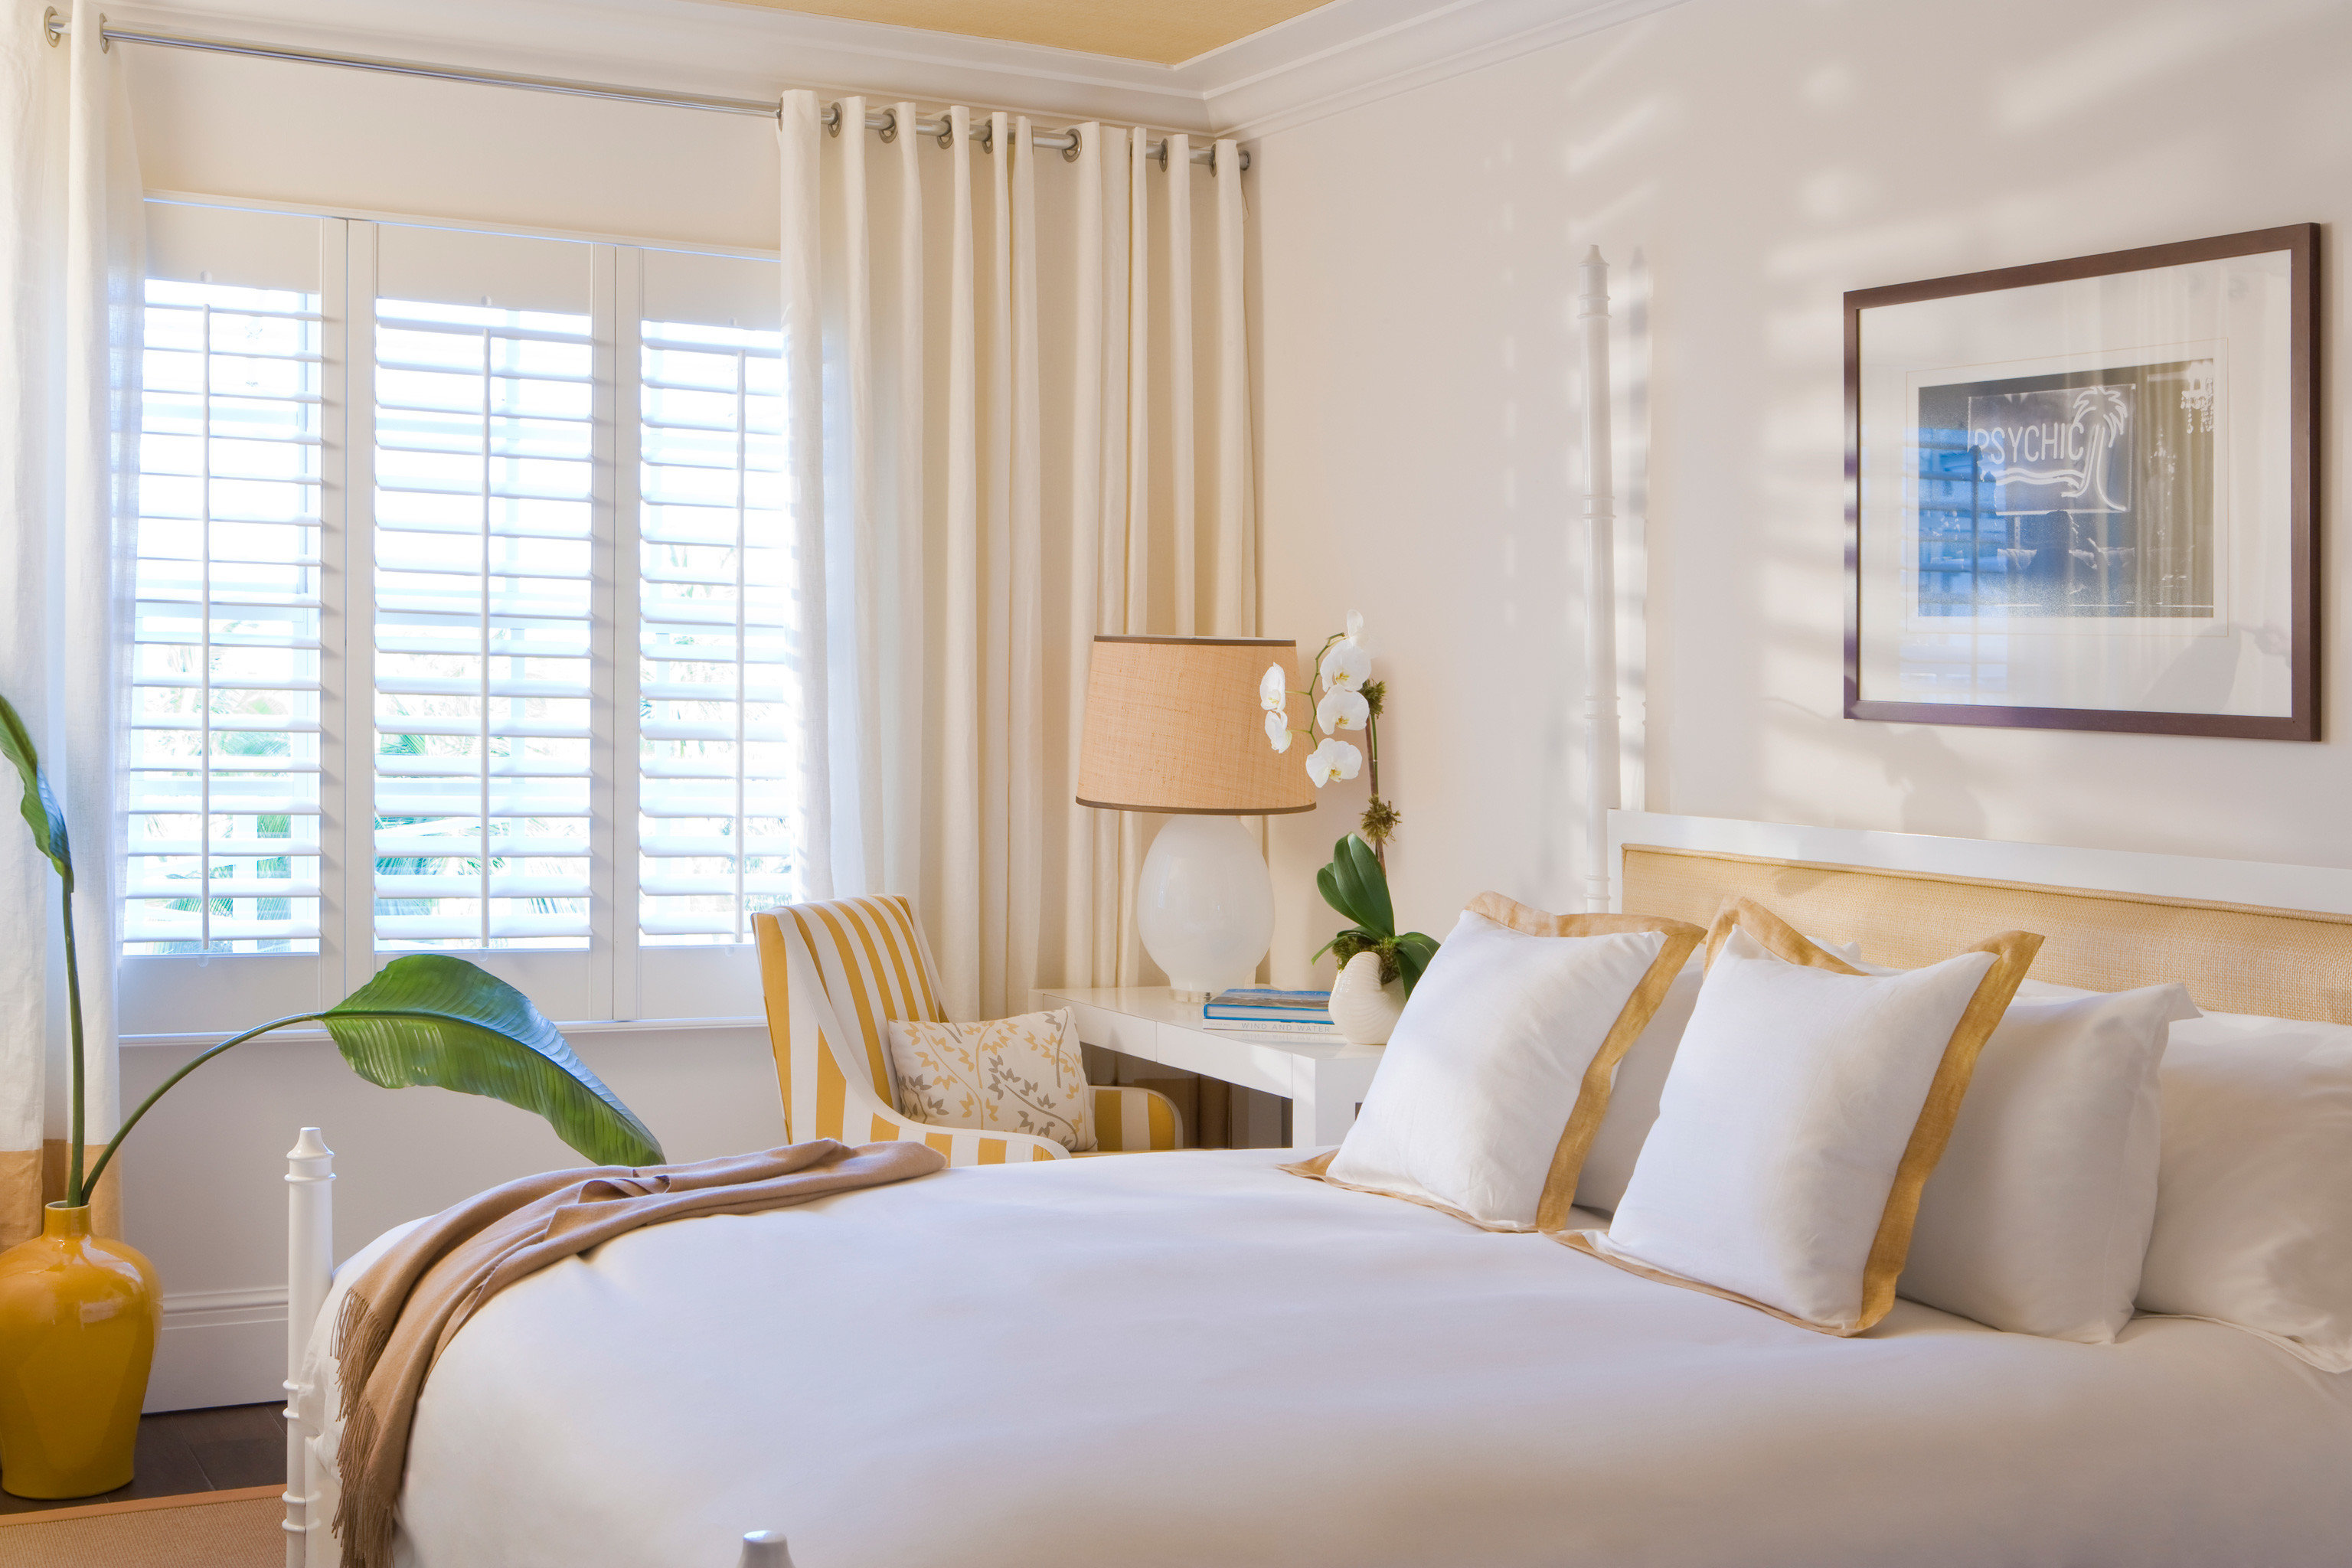 Bedroom Classic Hotels Living Resort Suite indoor window wall bed floor room property interior design home white real estate estate living room cottage decorated hotel bed sheet window covering furniture